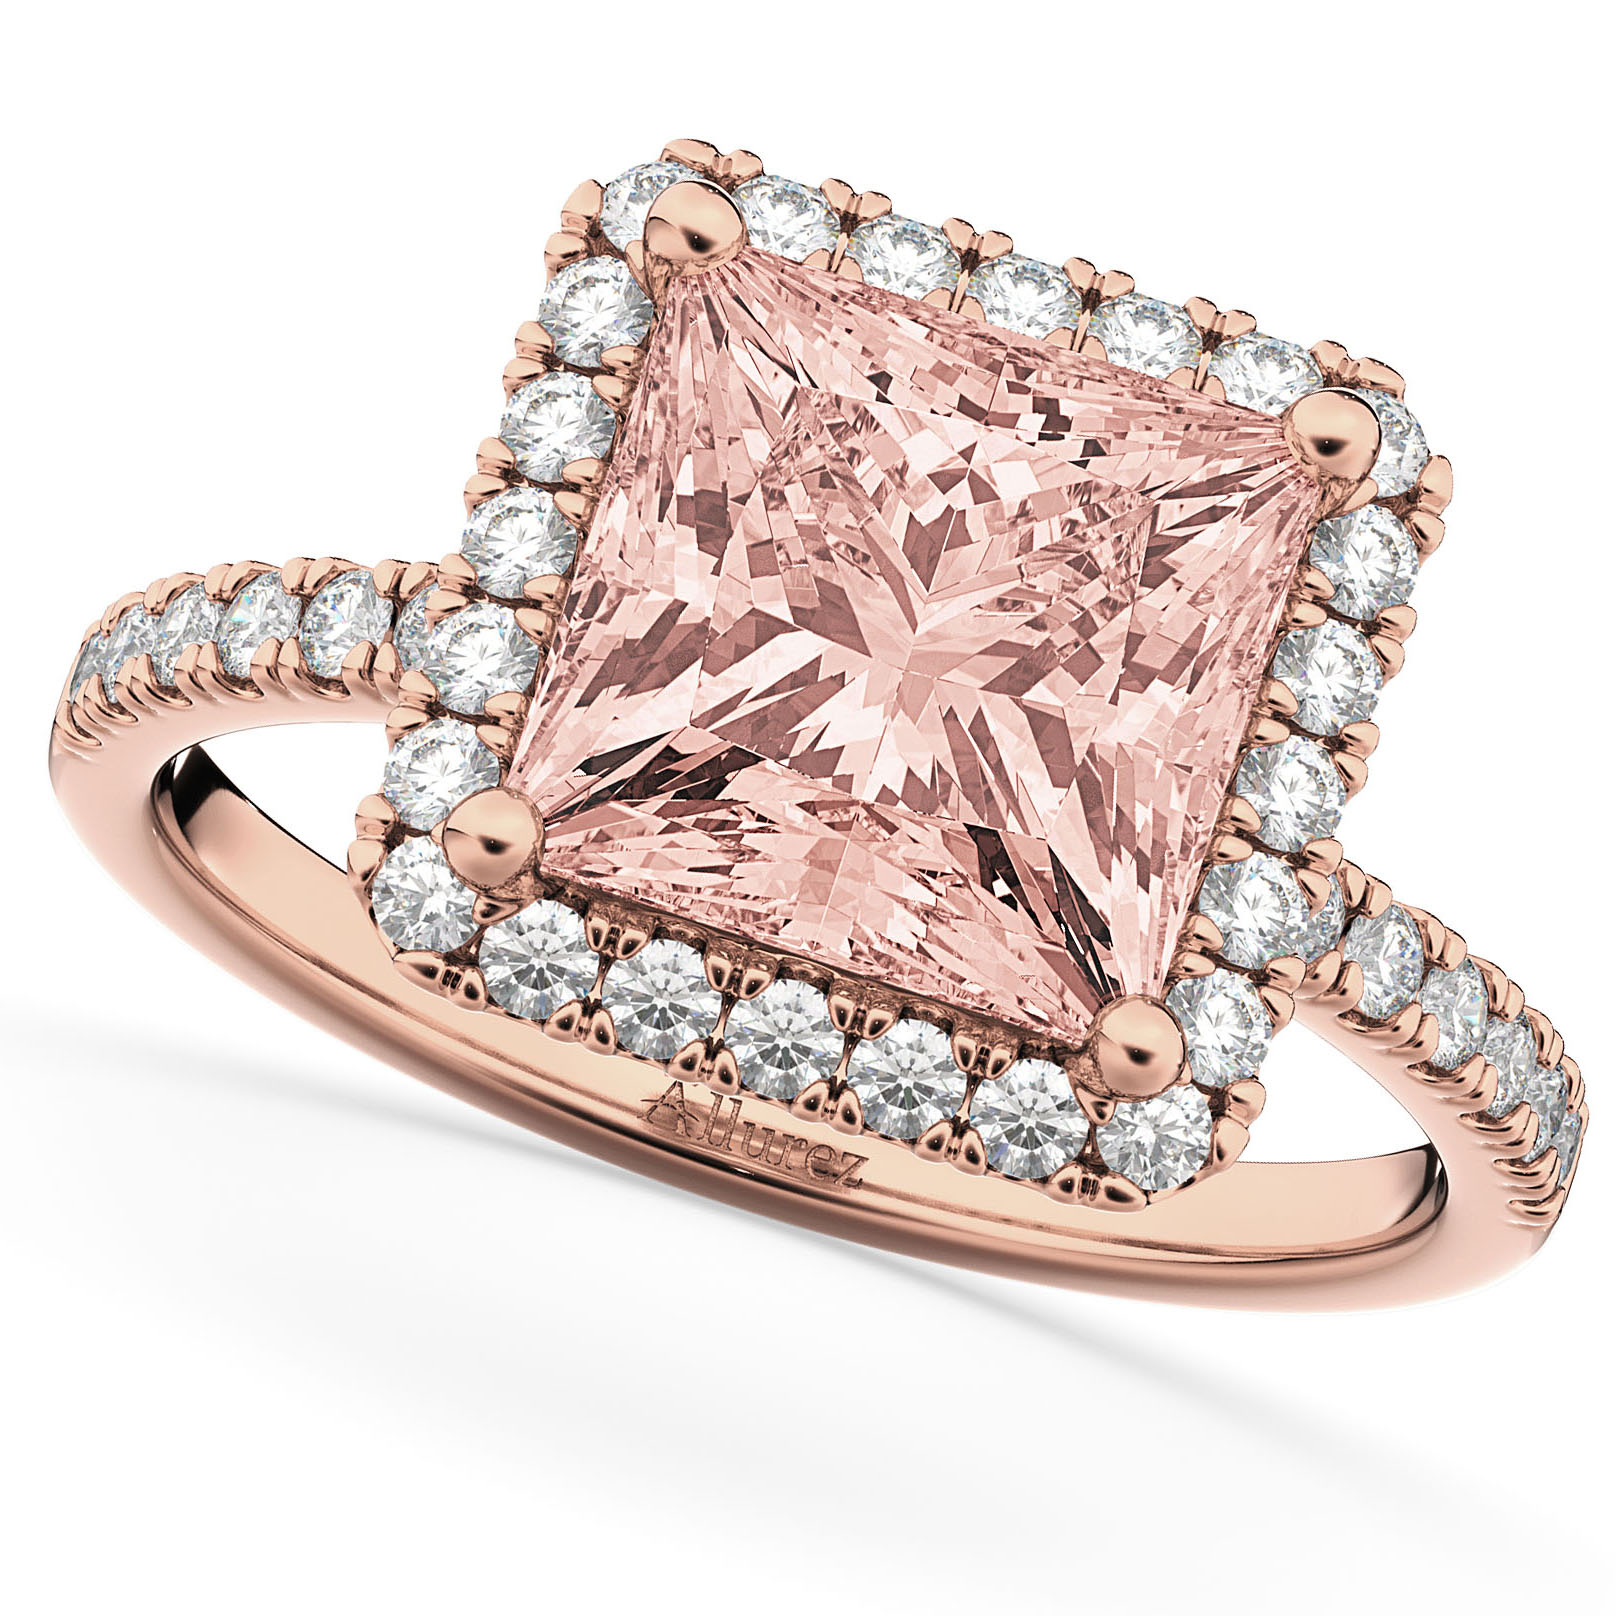 Princess Cut Halo Morganite & Diamond Engagement Ring 14K Rose Gold 3.47ct